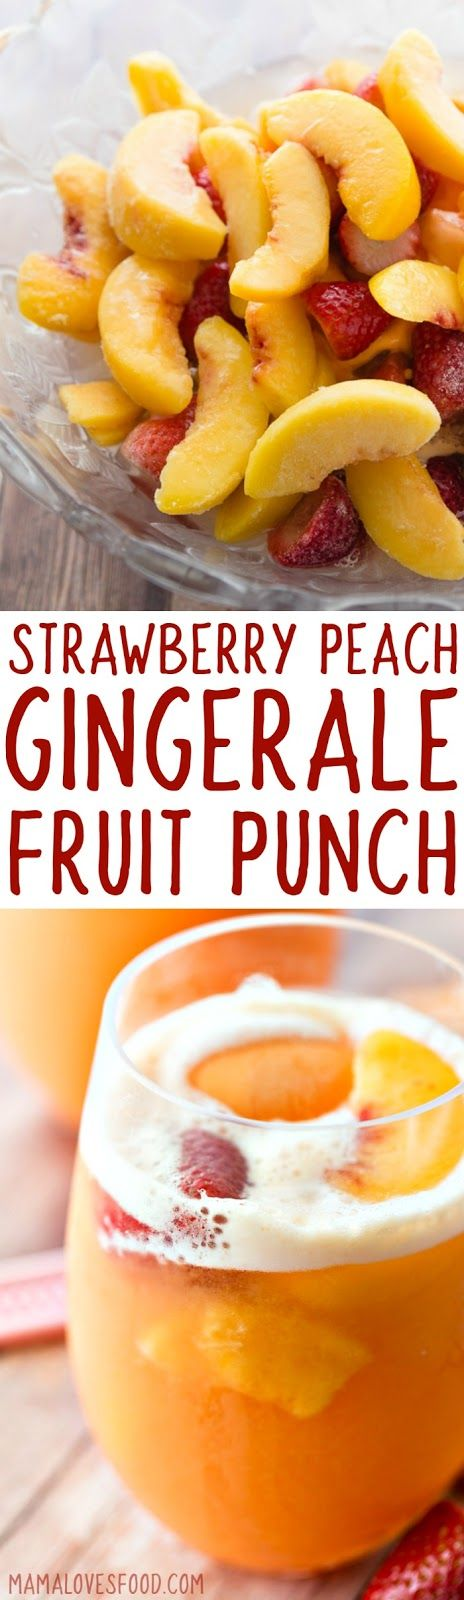 Strawberry Peach Ginger Ale Party Punch Recipe! 'Vodka Optional